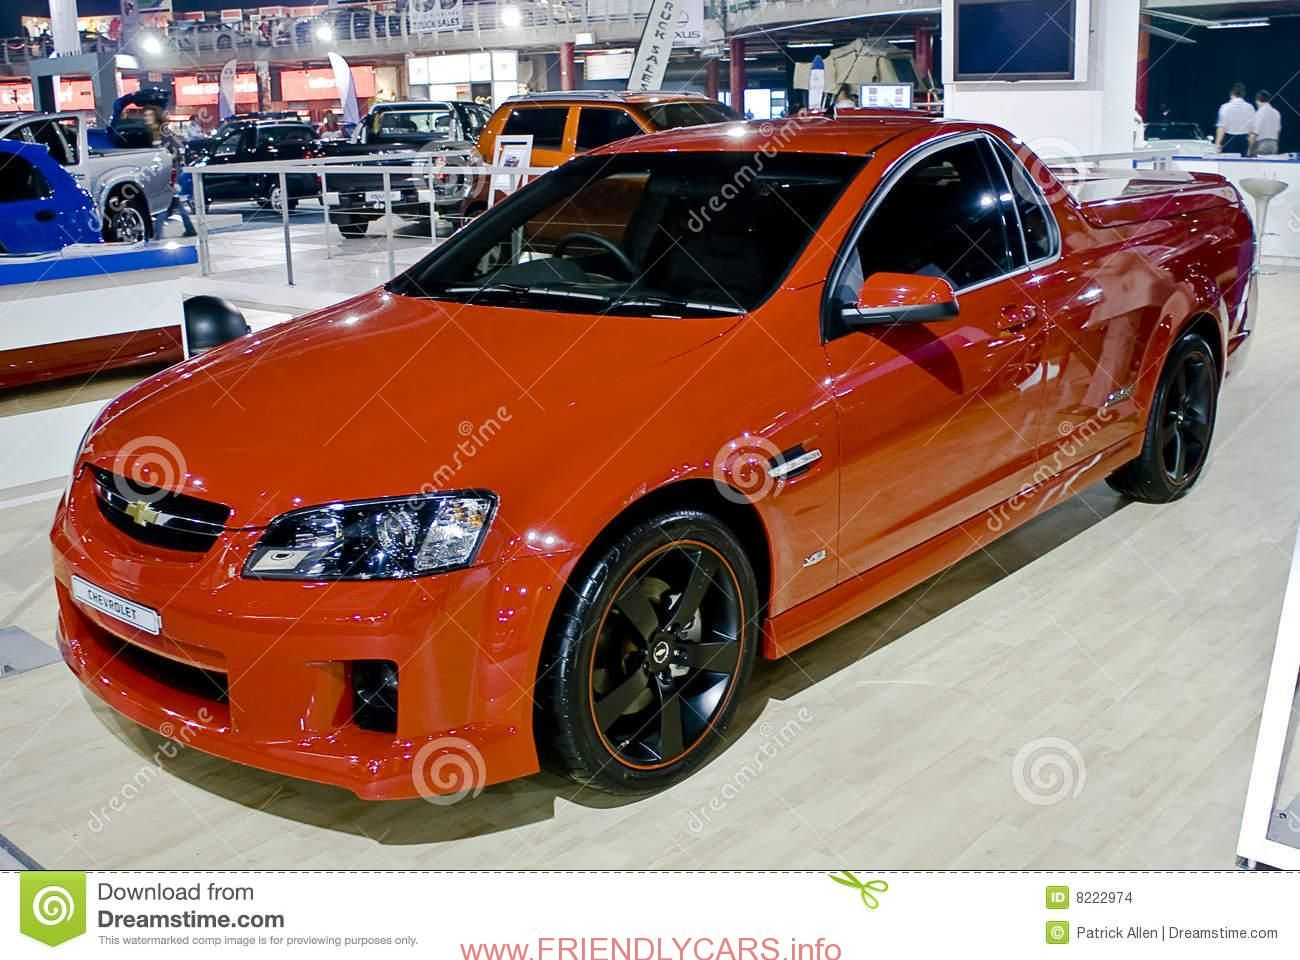 hight resolution of cool chevrolet ss lumina sport car images hd chevrolet lumina ss ute mph editorial stock image image 8222974